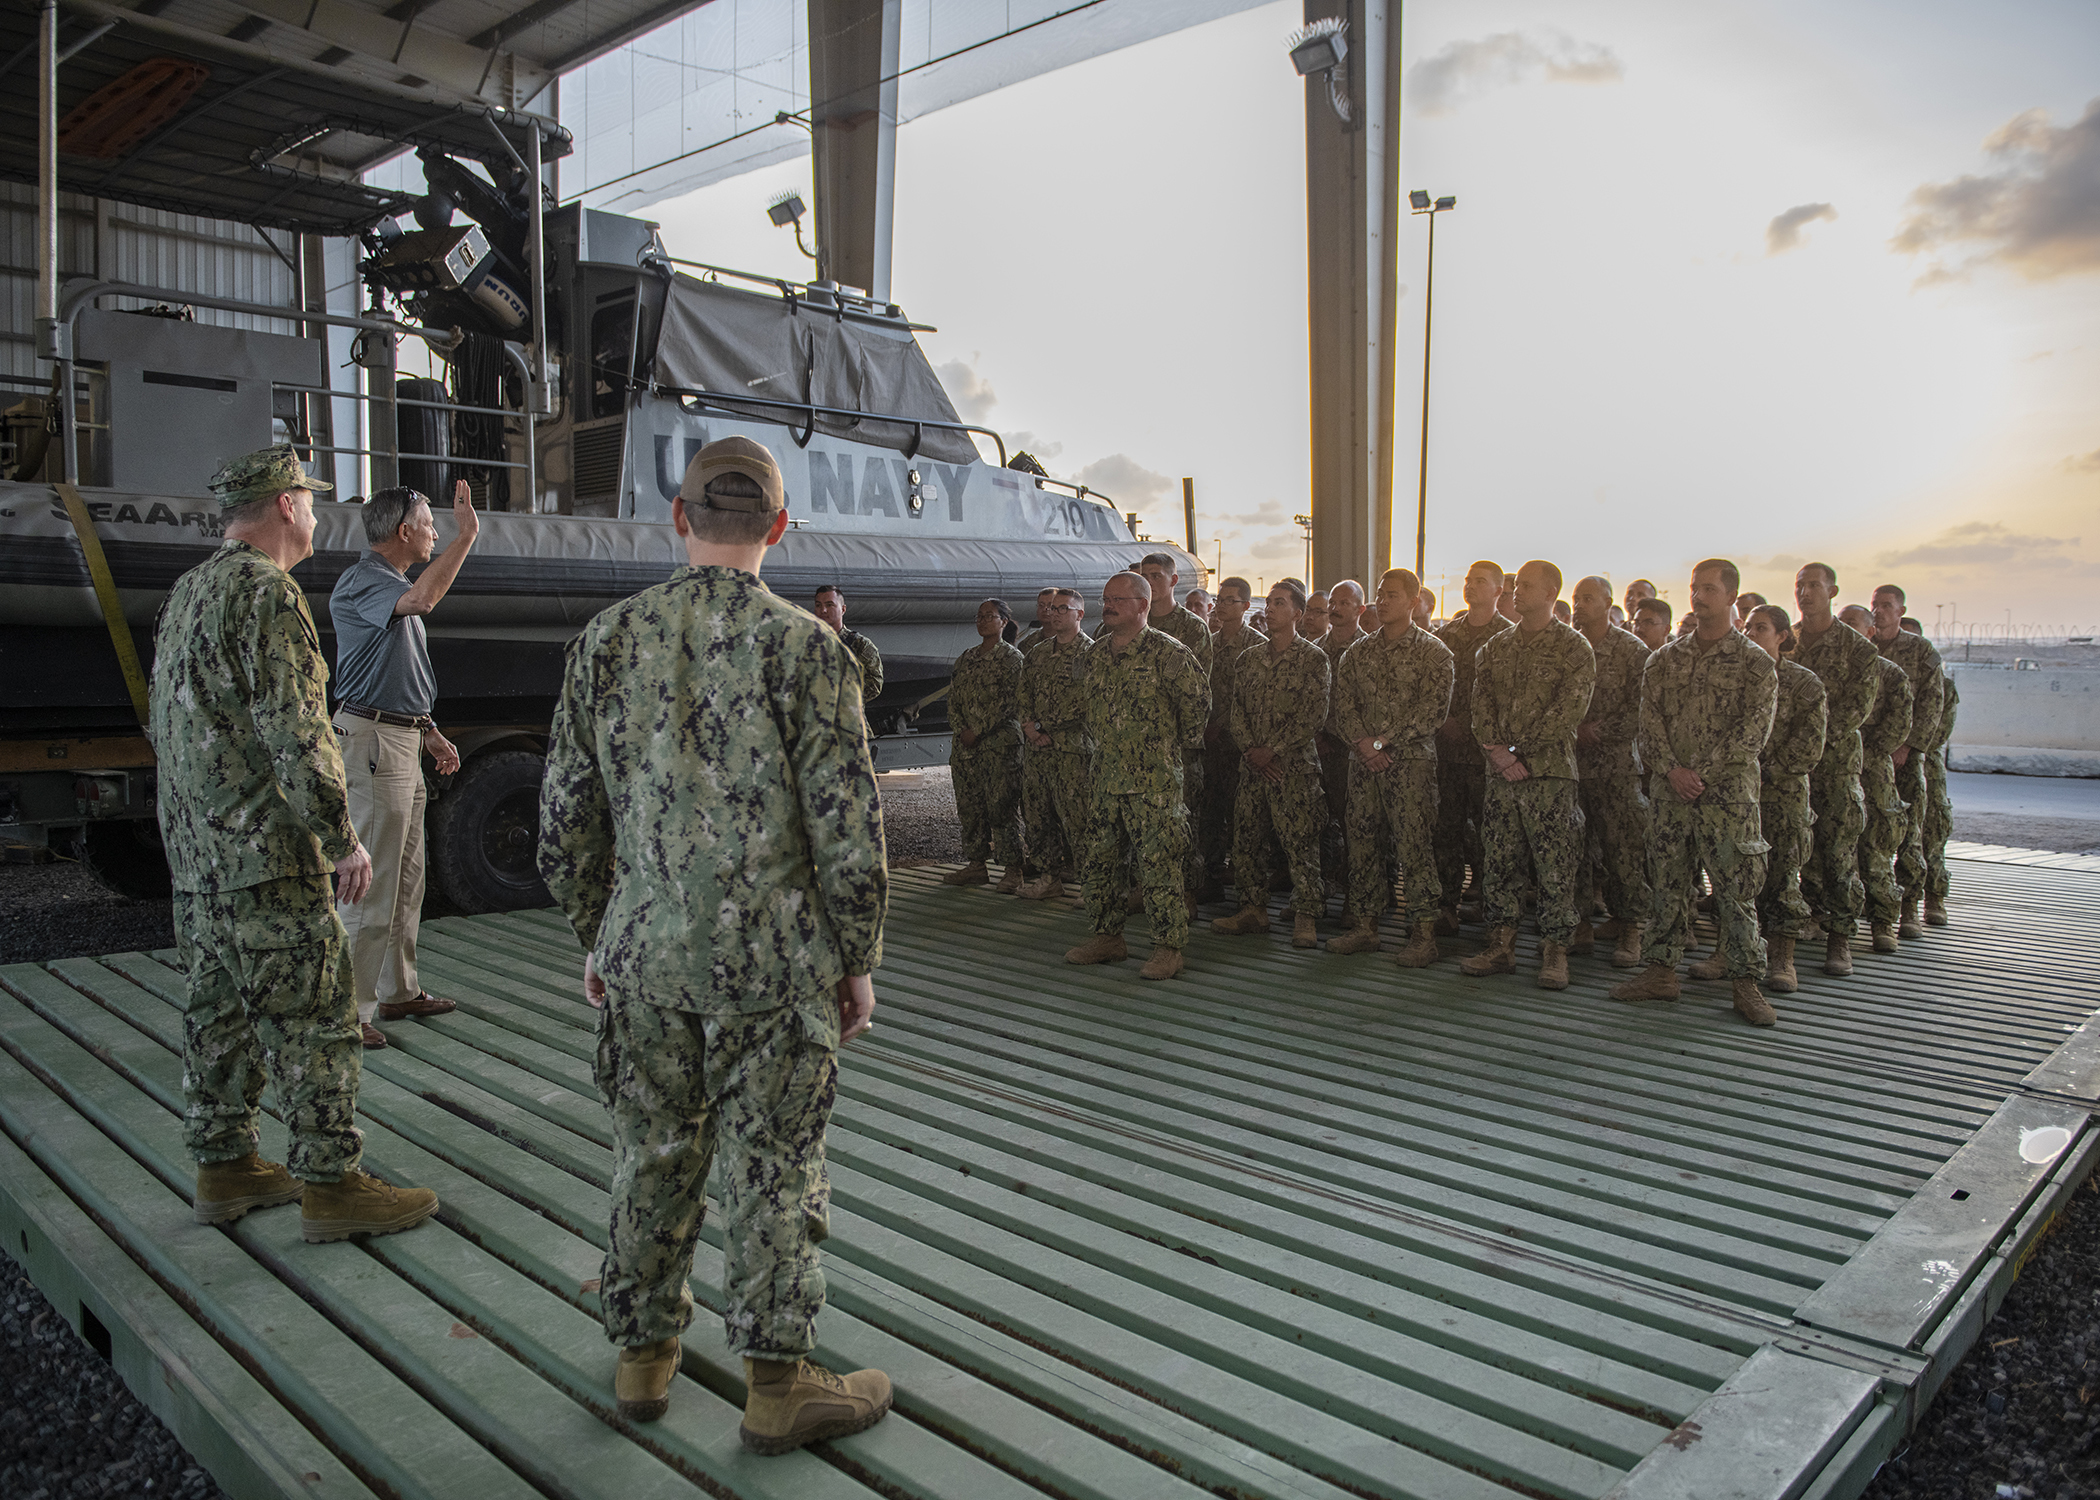 Assistant Secretary of the Navy (Manpower and Reserve Affairs) and retired Rear Adm. Gregory J. Slavonic, left, and Chief of Navy Reserve Vice Adm. Luke McCollum speak to Sailors from Coastal Riverine Squadron 11, assigned to Combined Joint Task Force - Horn of Africa, while visiting Camp Lemonnier, Djibouti, Feb. 3, 2019. Slavonic and McCollum visited as part of a tour of Reserve units to answer questions, discuss leadership initiatives and interact with local Sailors. (U.S. Air Force photo by Tech. Sgt. Shawn Nickel)